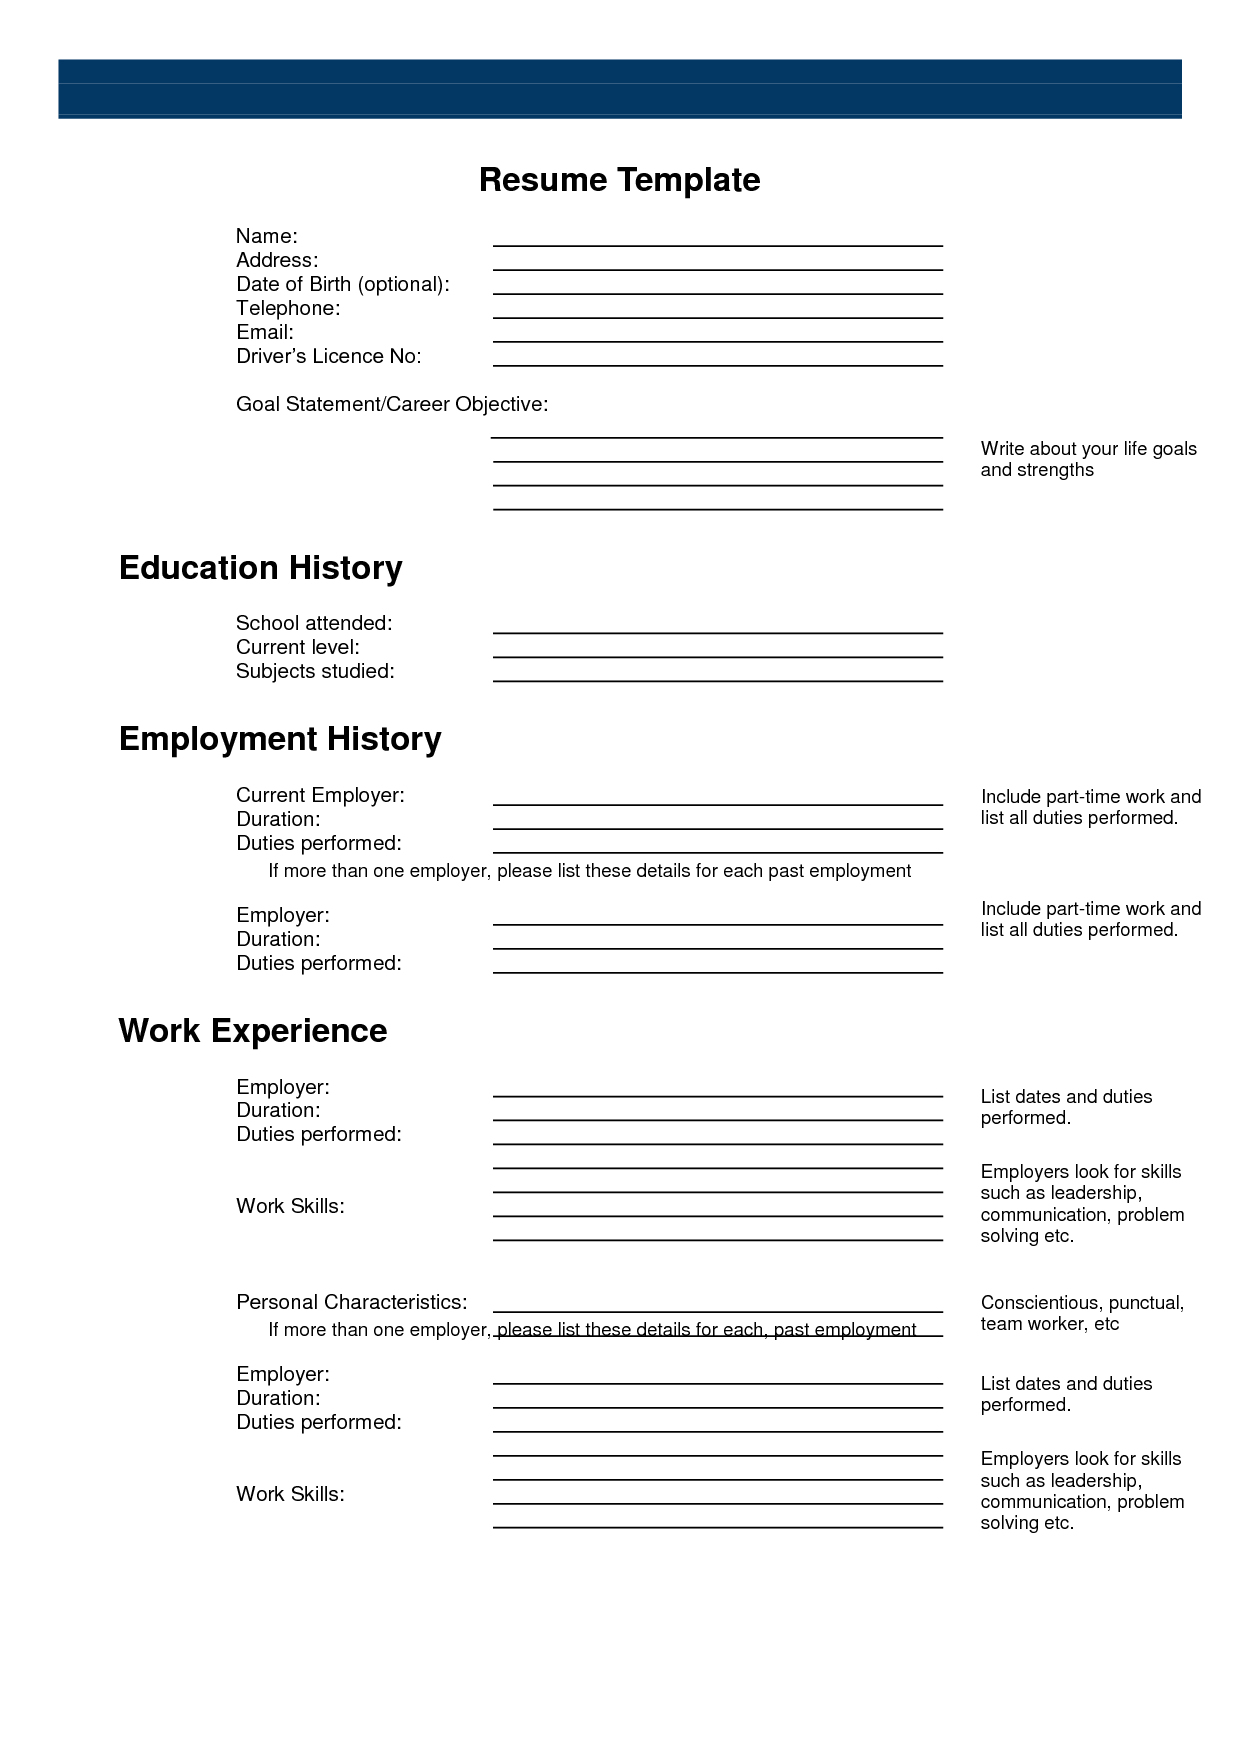 Free Printable Resume Templates Microsoft Word Best Of 23 Template - Free Printable Resume Templates Microsoft Word